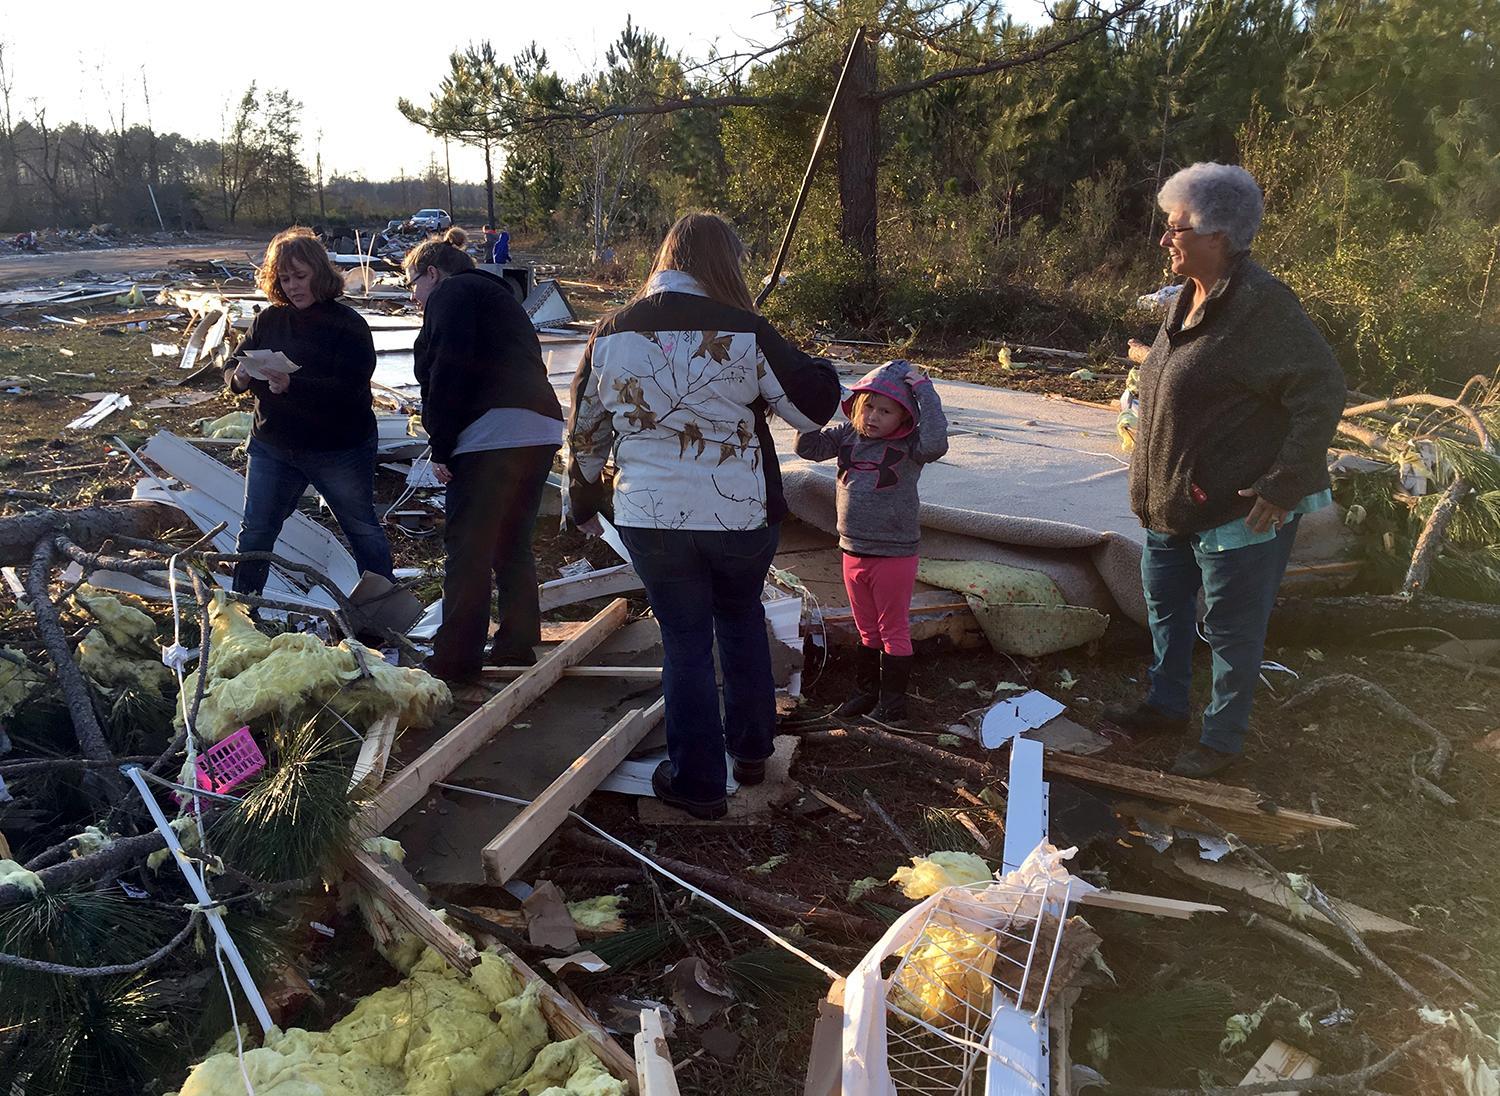 <p>Bonnie Collier, right, and her two granddaughters, daughter and daughter-in-law pick through the wreckage of her mobile home trying to find clothes and family photos on Monday, Jan. 23, 2017, near Cecil, Ga. (AP Photo/Brendan Farrington) </p>